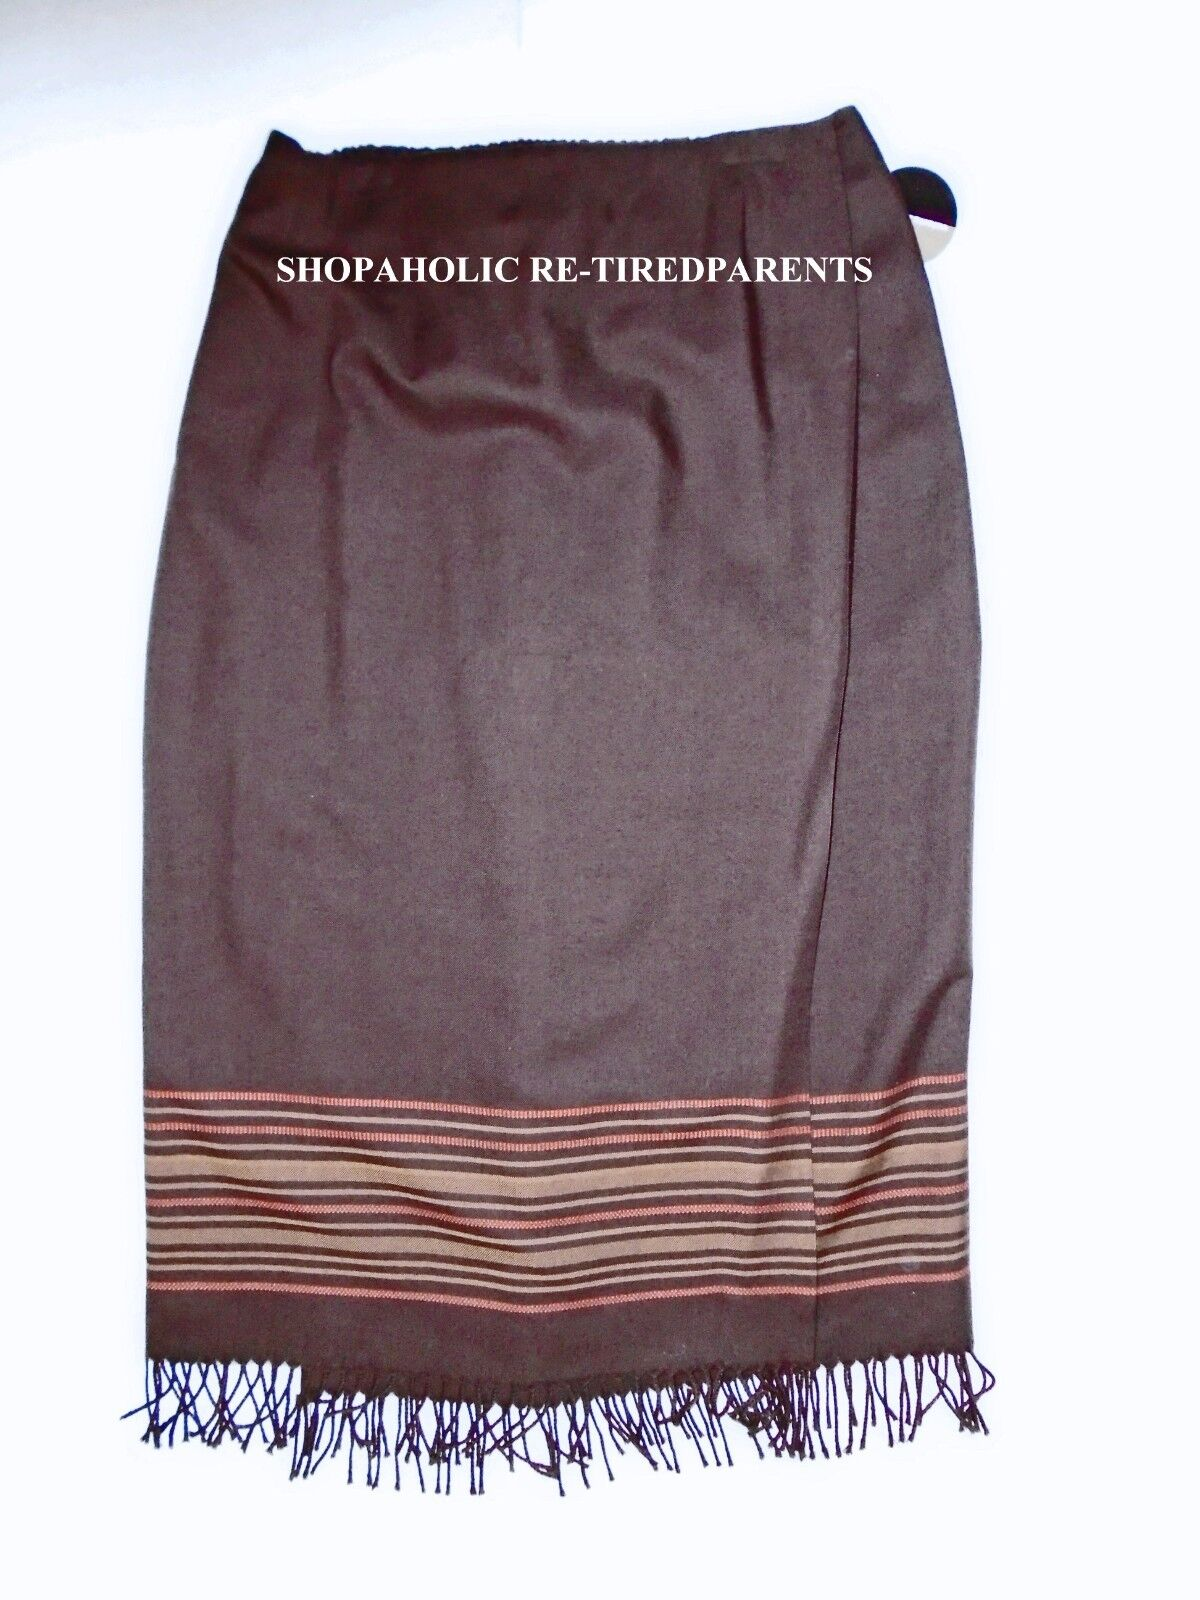 VALERIE STEVENS WOMAN – WRAP SKIRT – BROWN – SOFT WOOLMARK WOOL –SZ 18W -NWT  79